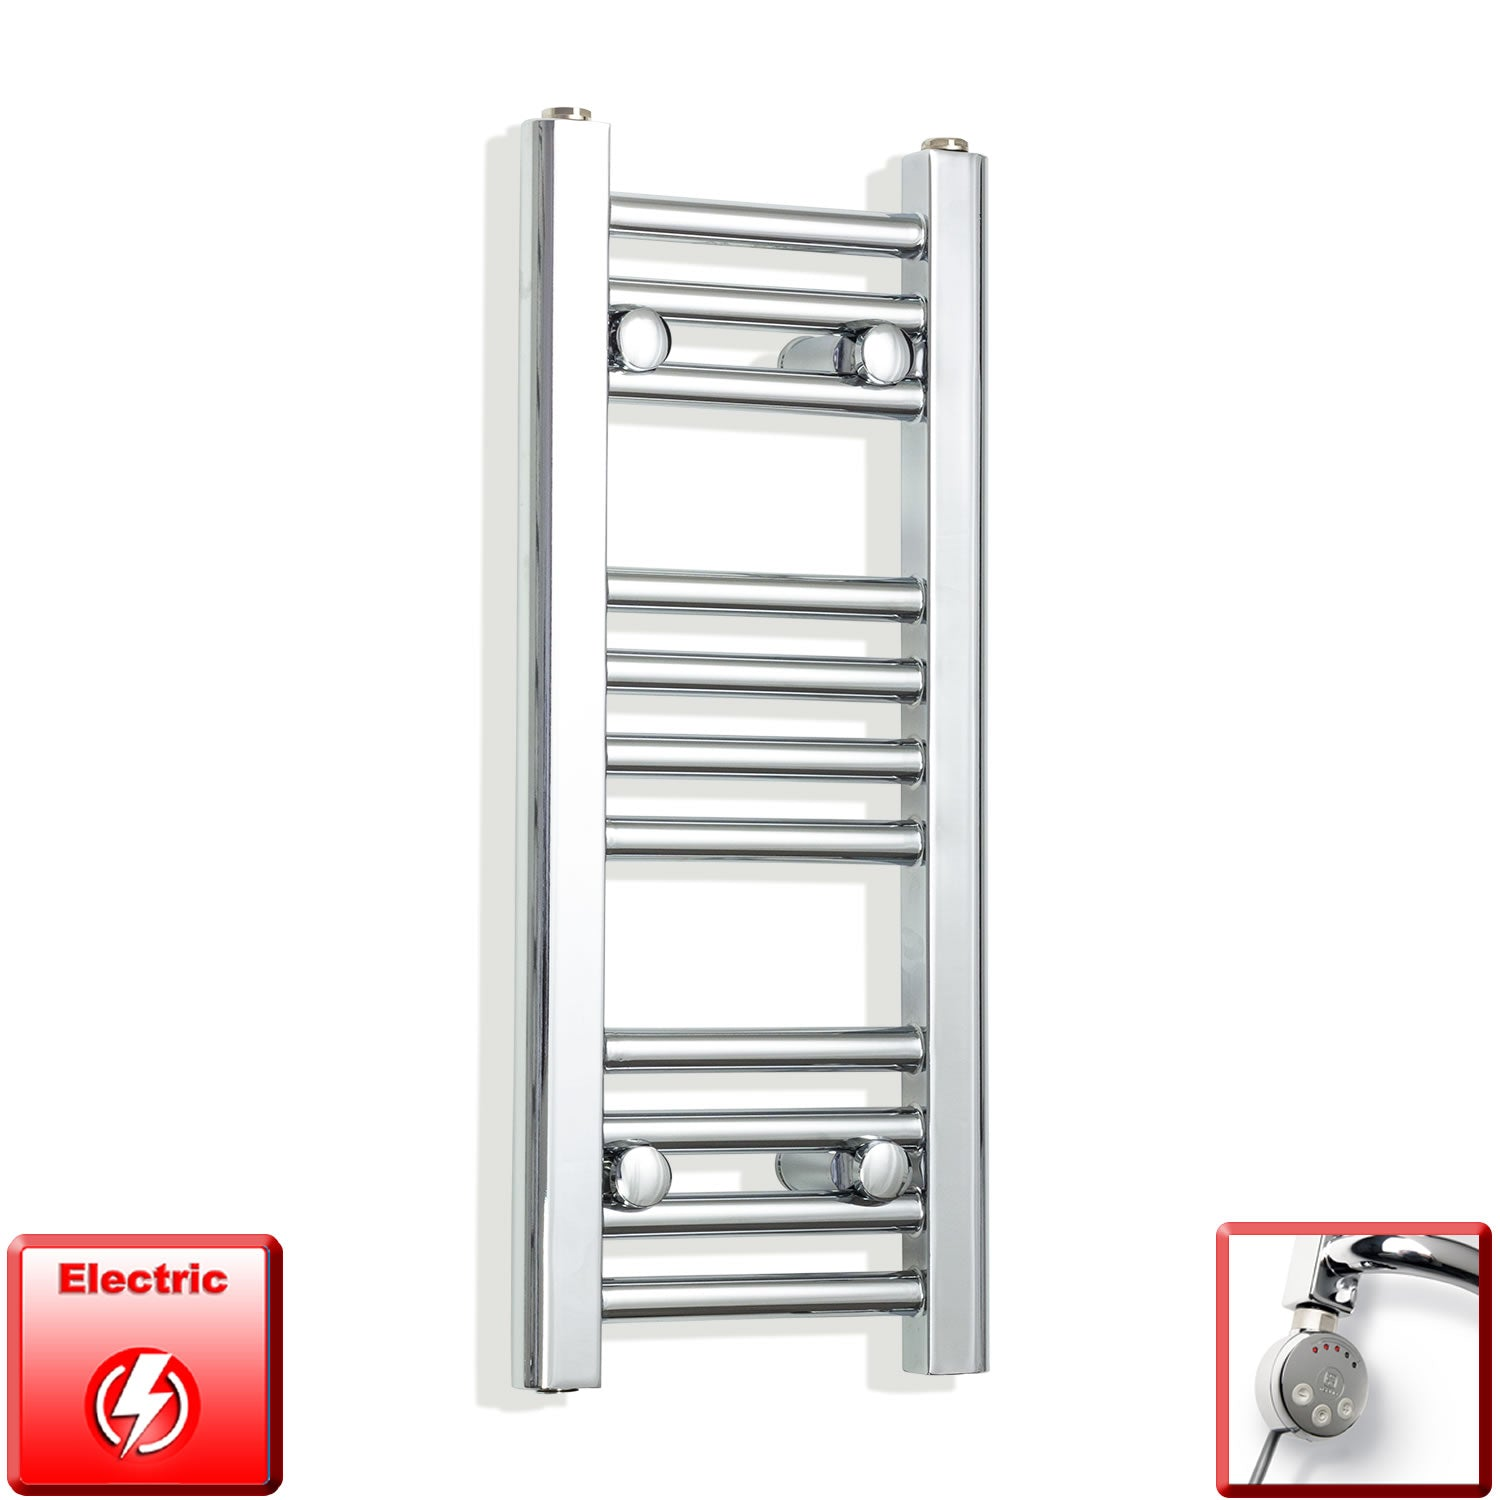 250mm Wide 600mm High Pre-Filled Chrome Electric Towel Rail Radiator With Thermostatic MEG Element